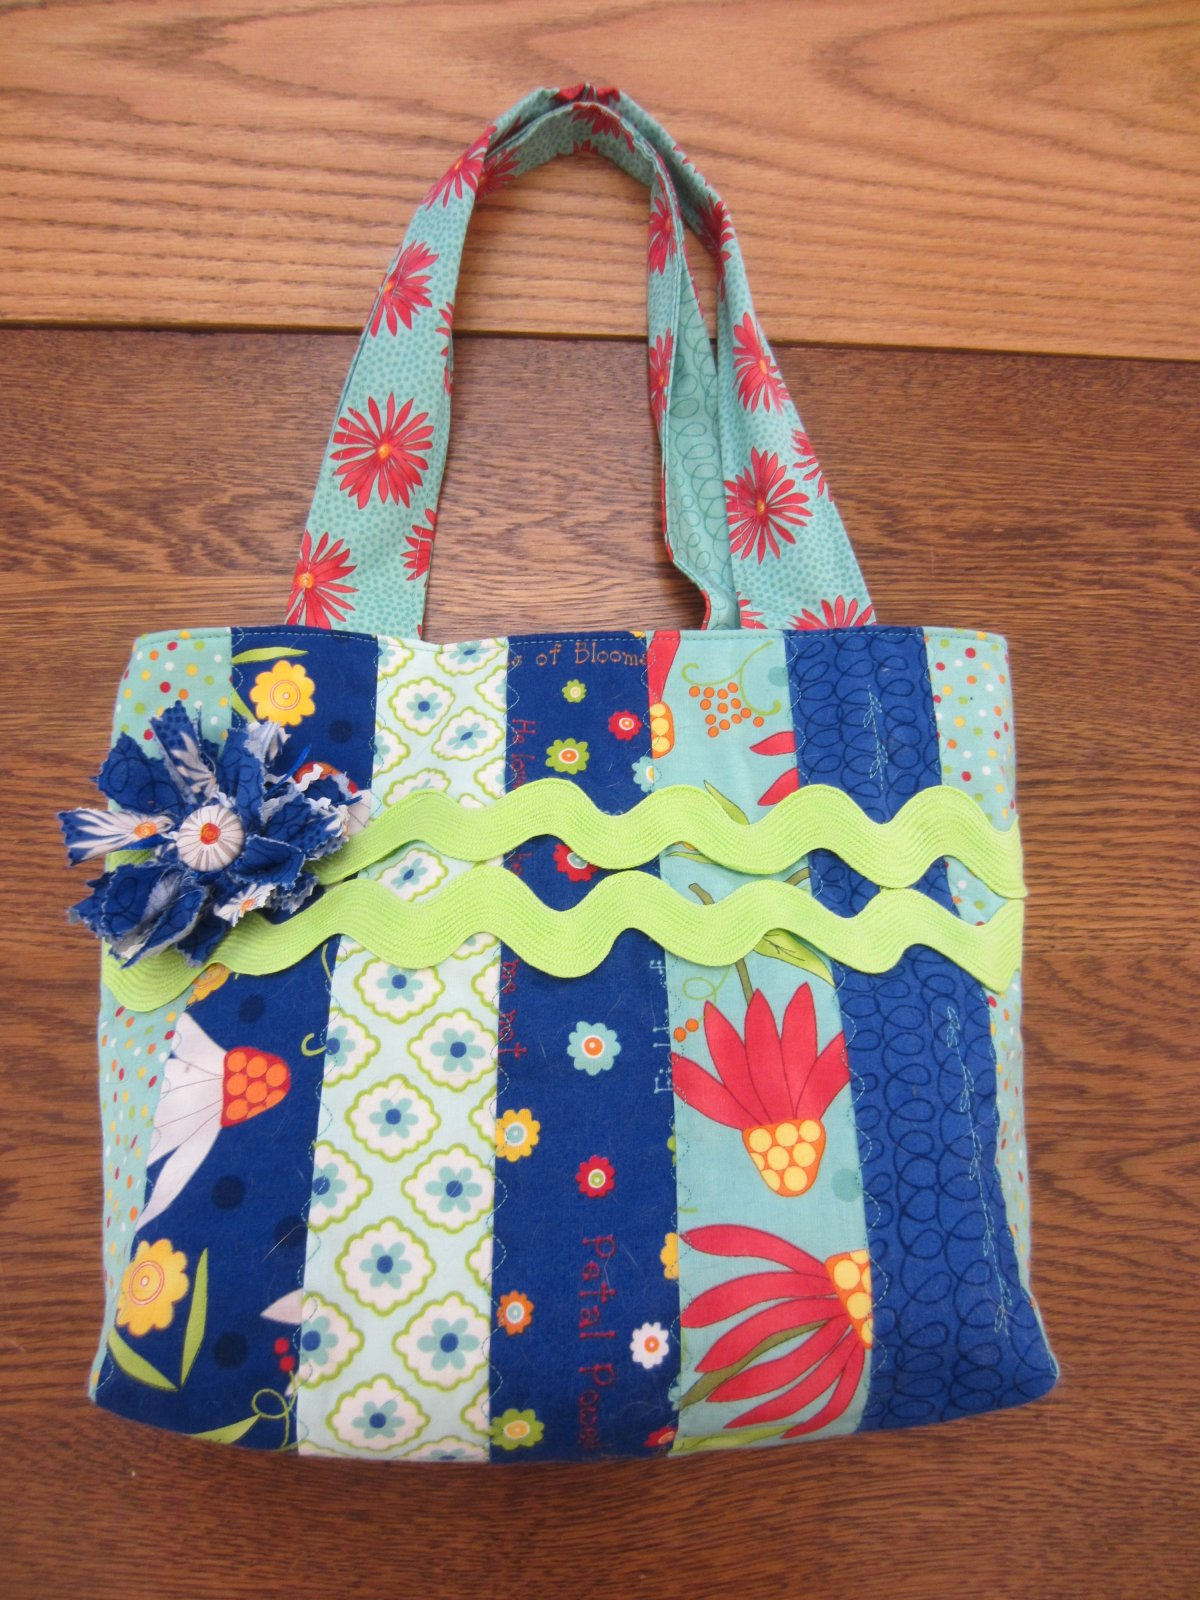 Blue Jelly Roll Bag